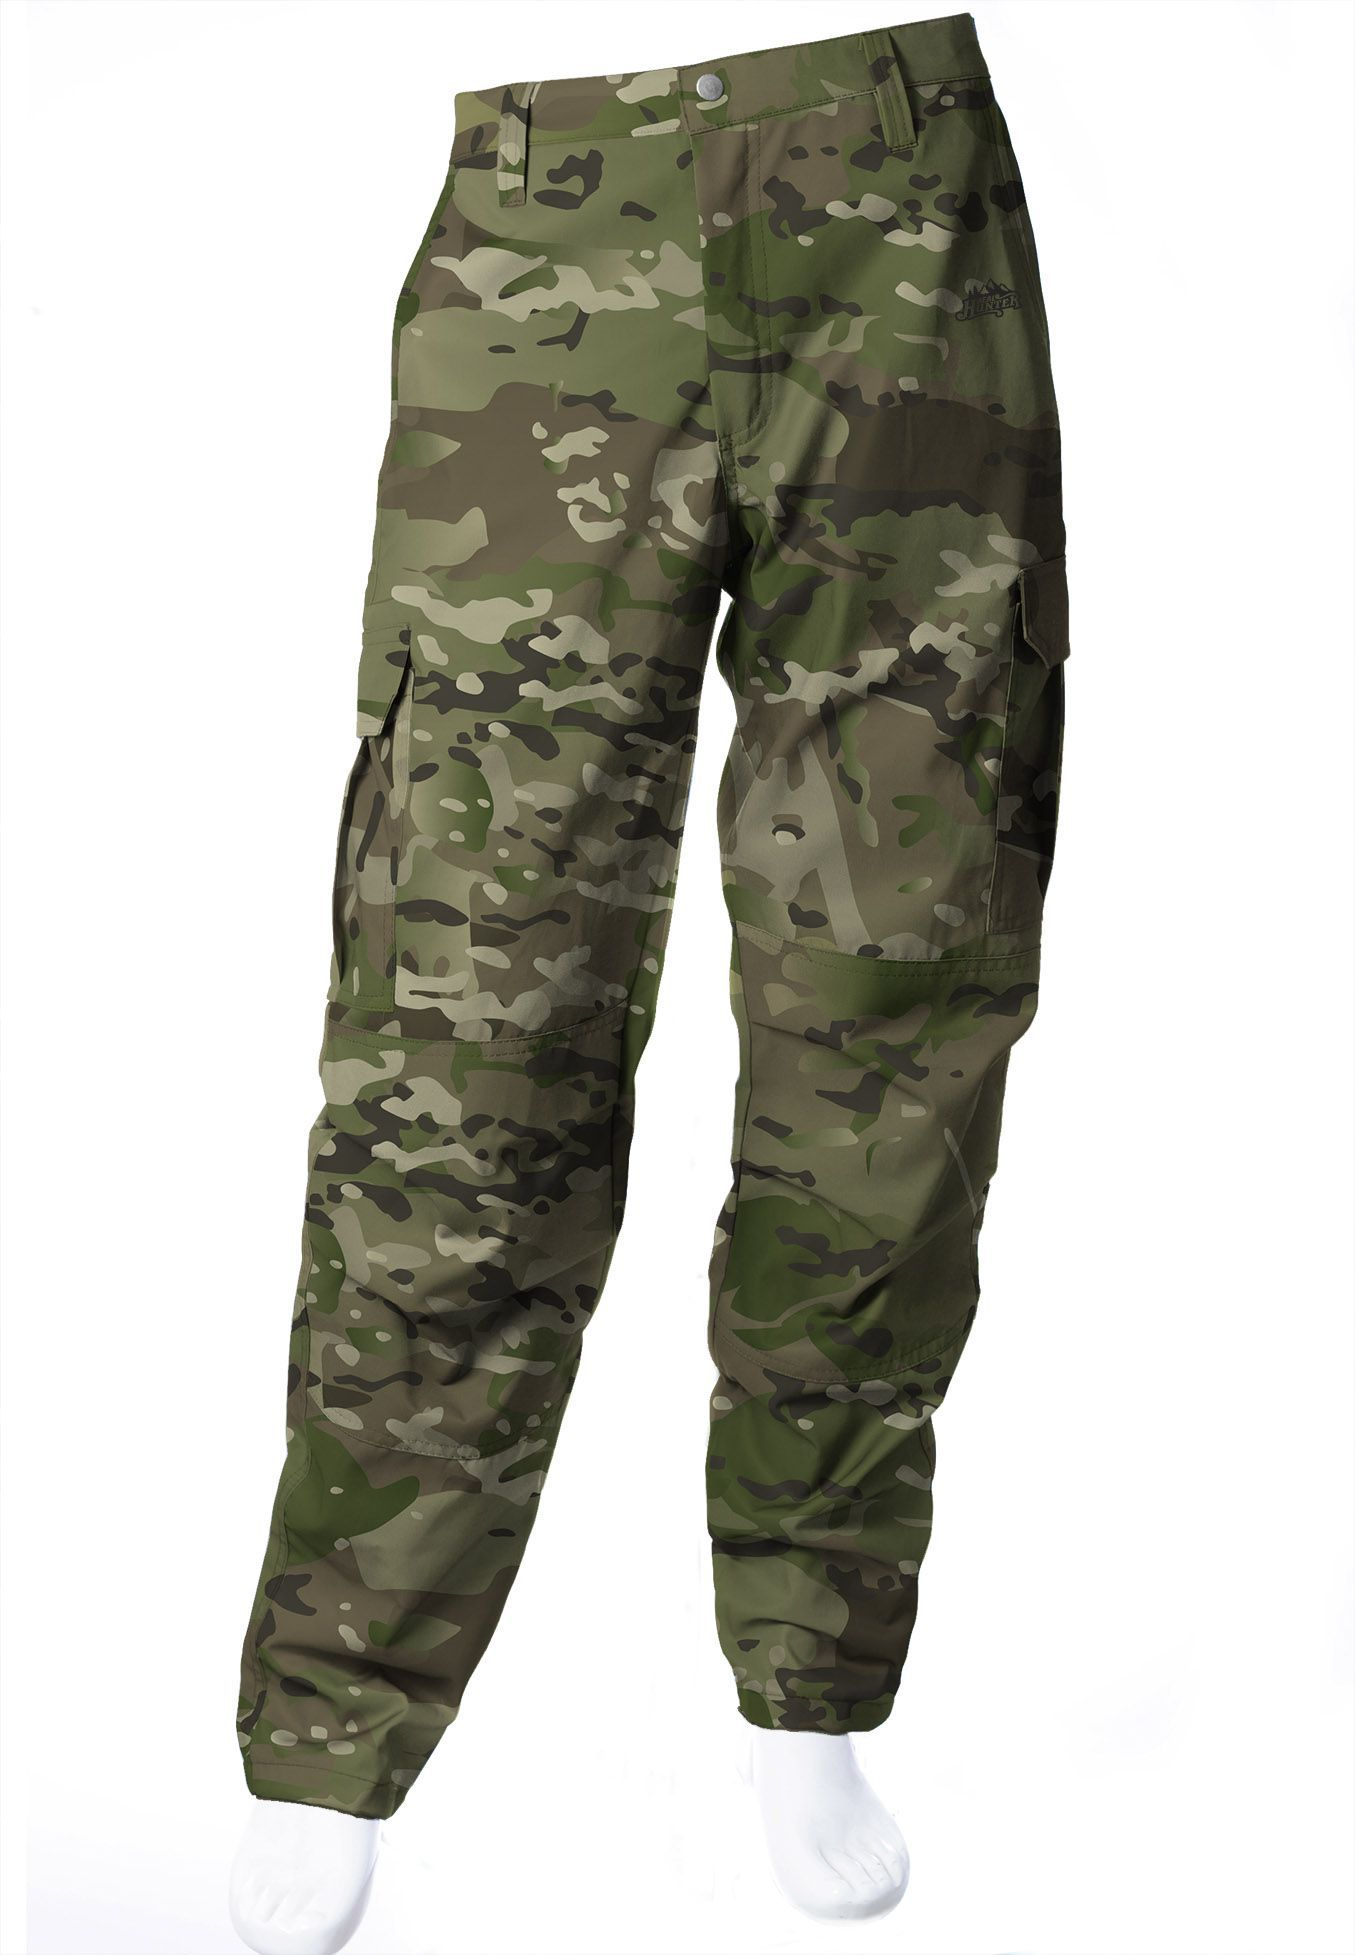 CALÇA CAMUFLADA MULTICAM BRIM FLÚOR CARBON MASCULINA  - REAL HUNTER OUTDOORS